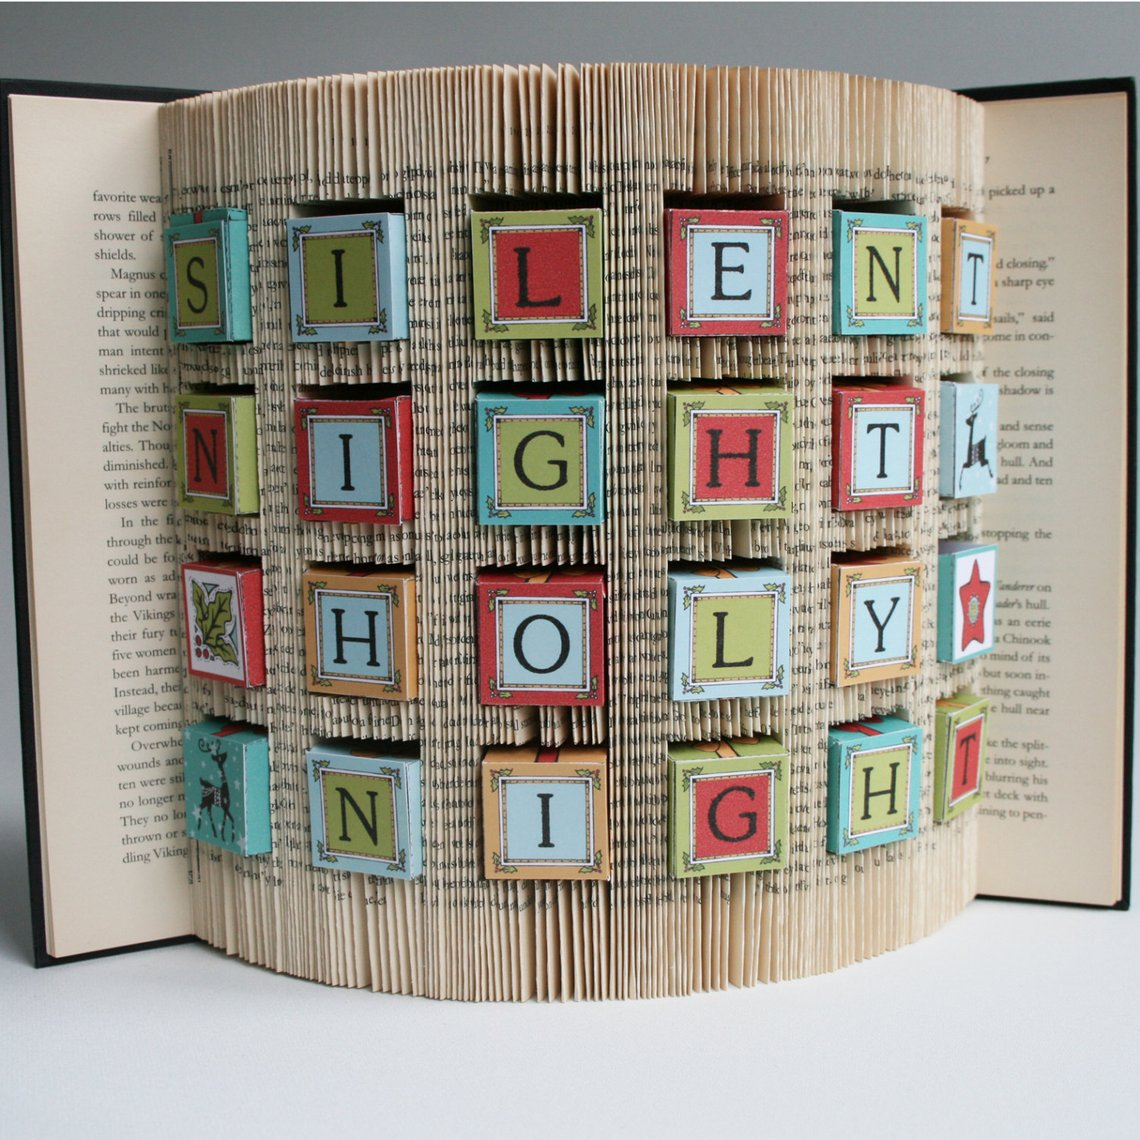 Creative Advent calendars for kids: DIY Book art Advent calendar tutorial | Love Book Folding